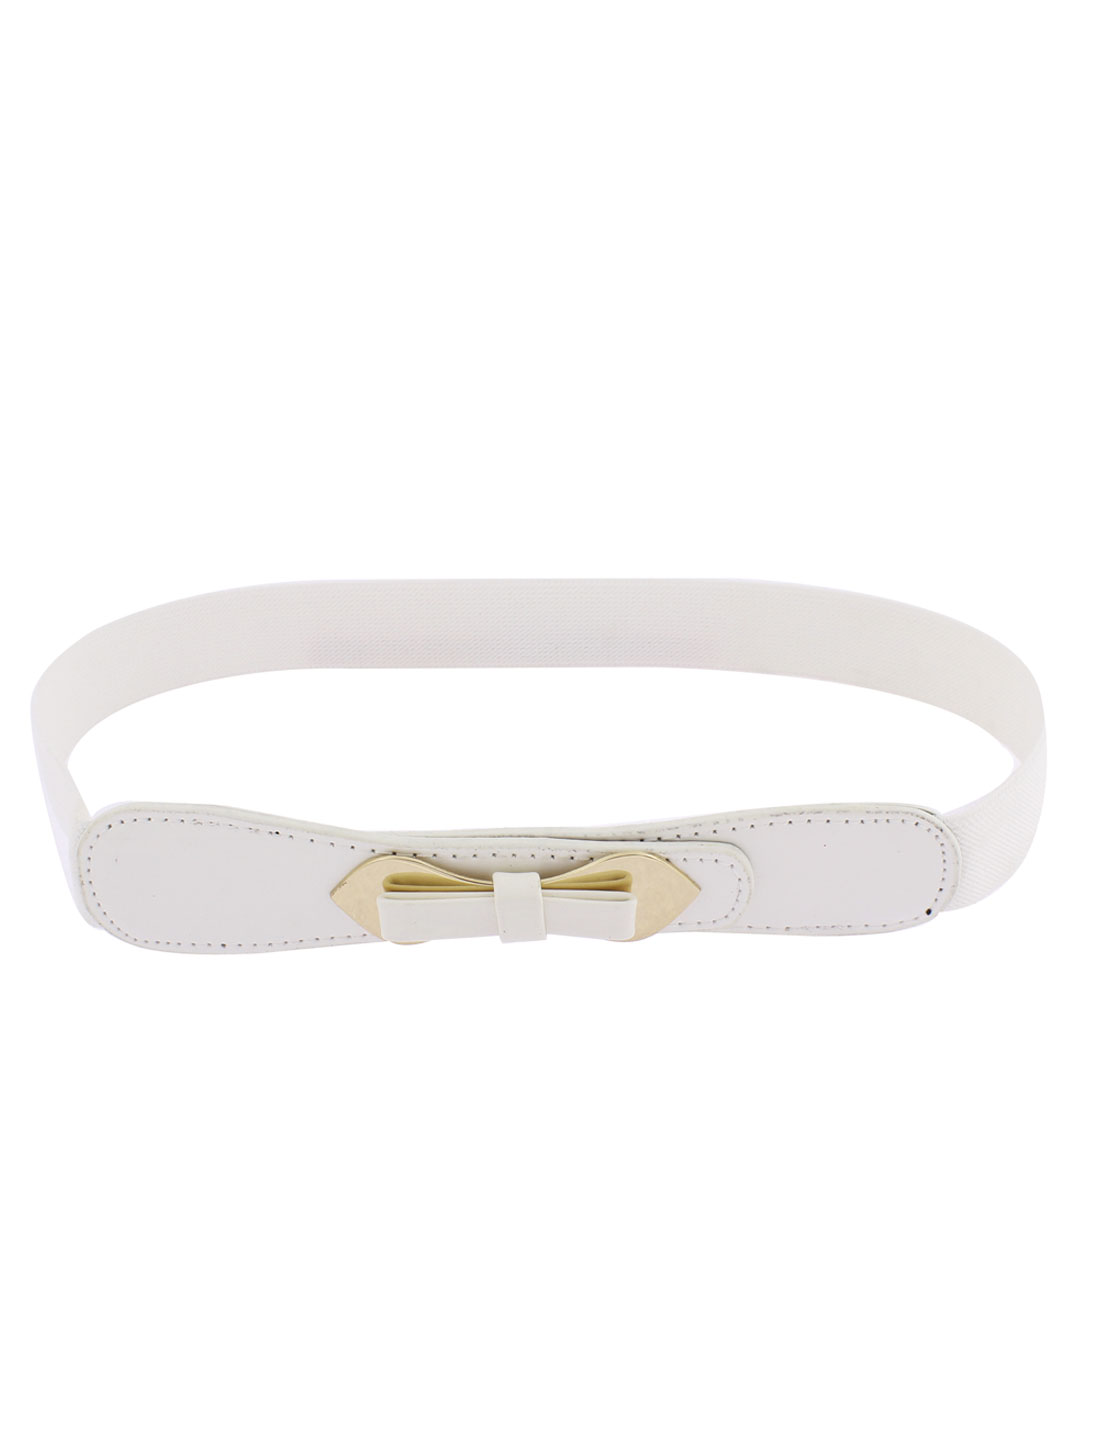 Double Pin Buckle Adjustable Elastic Waistband Waist Belt White